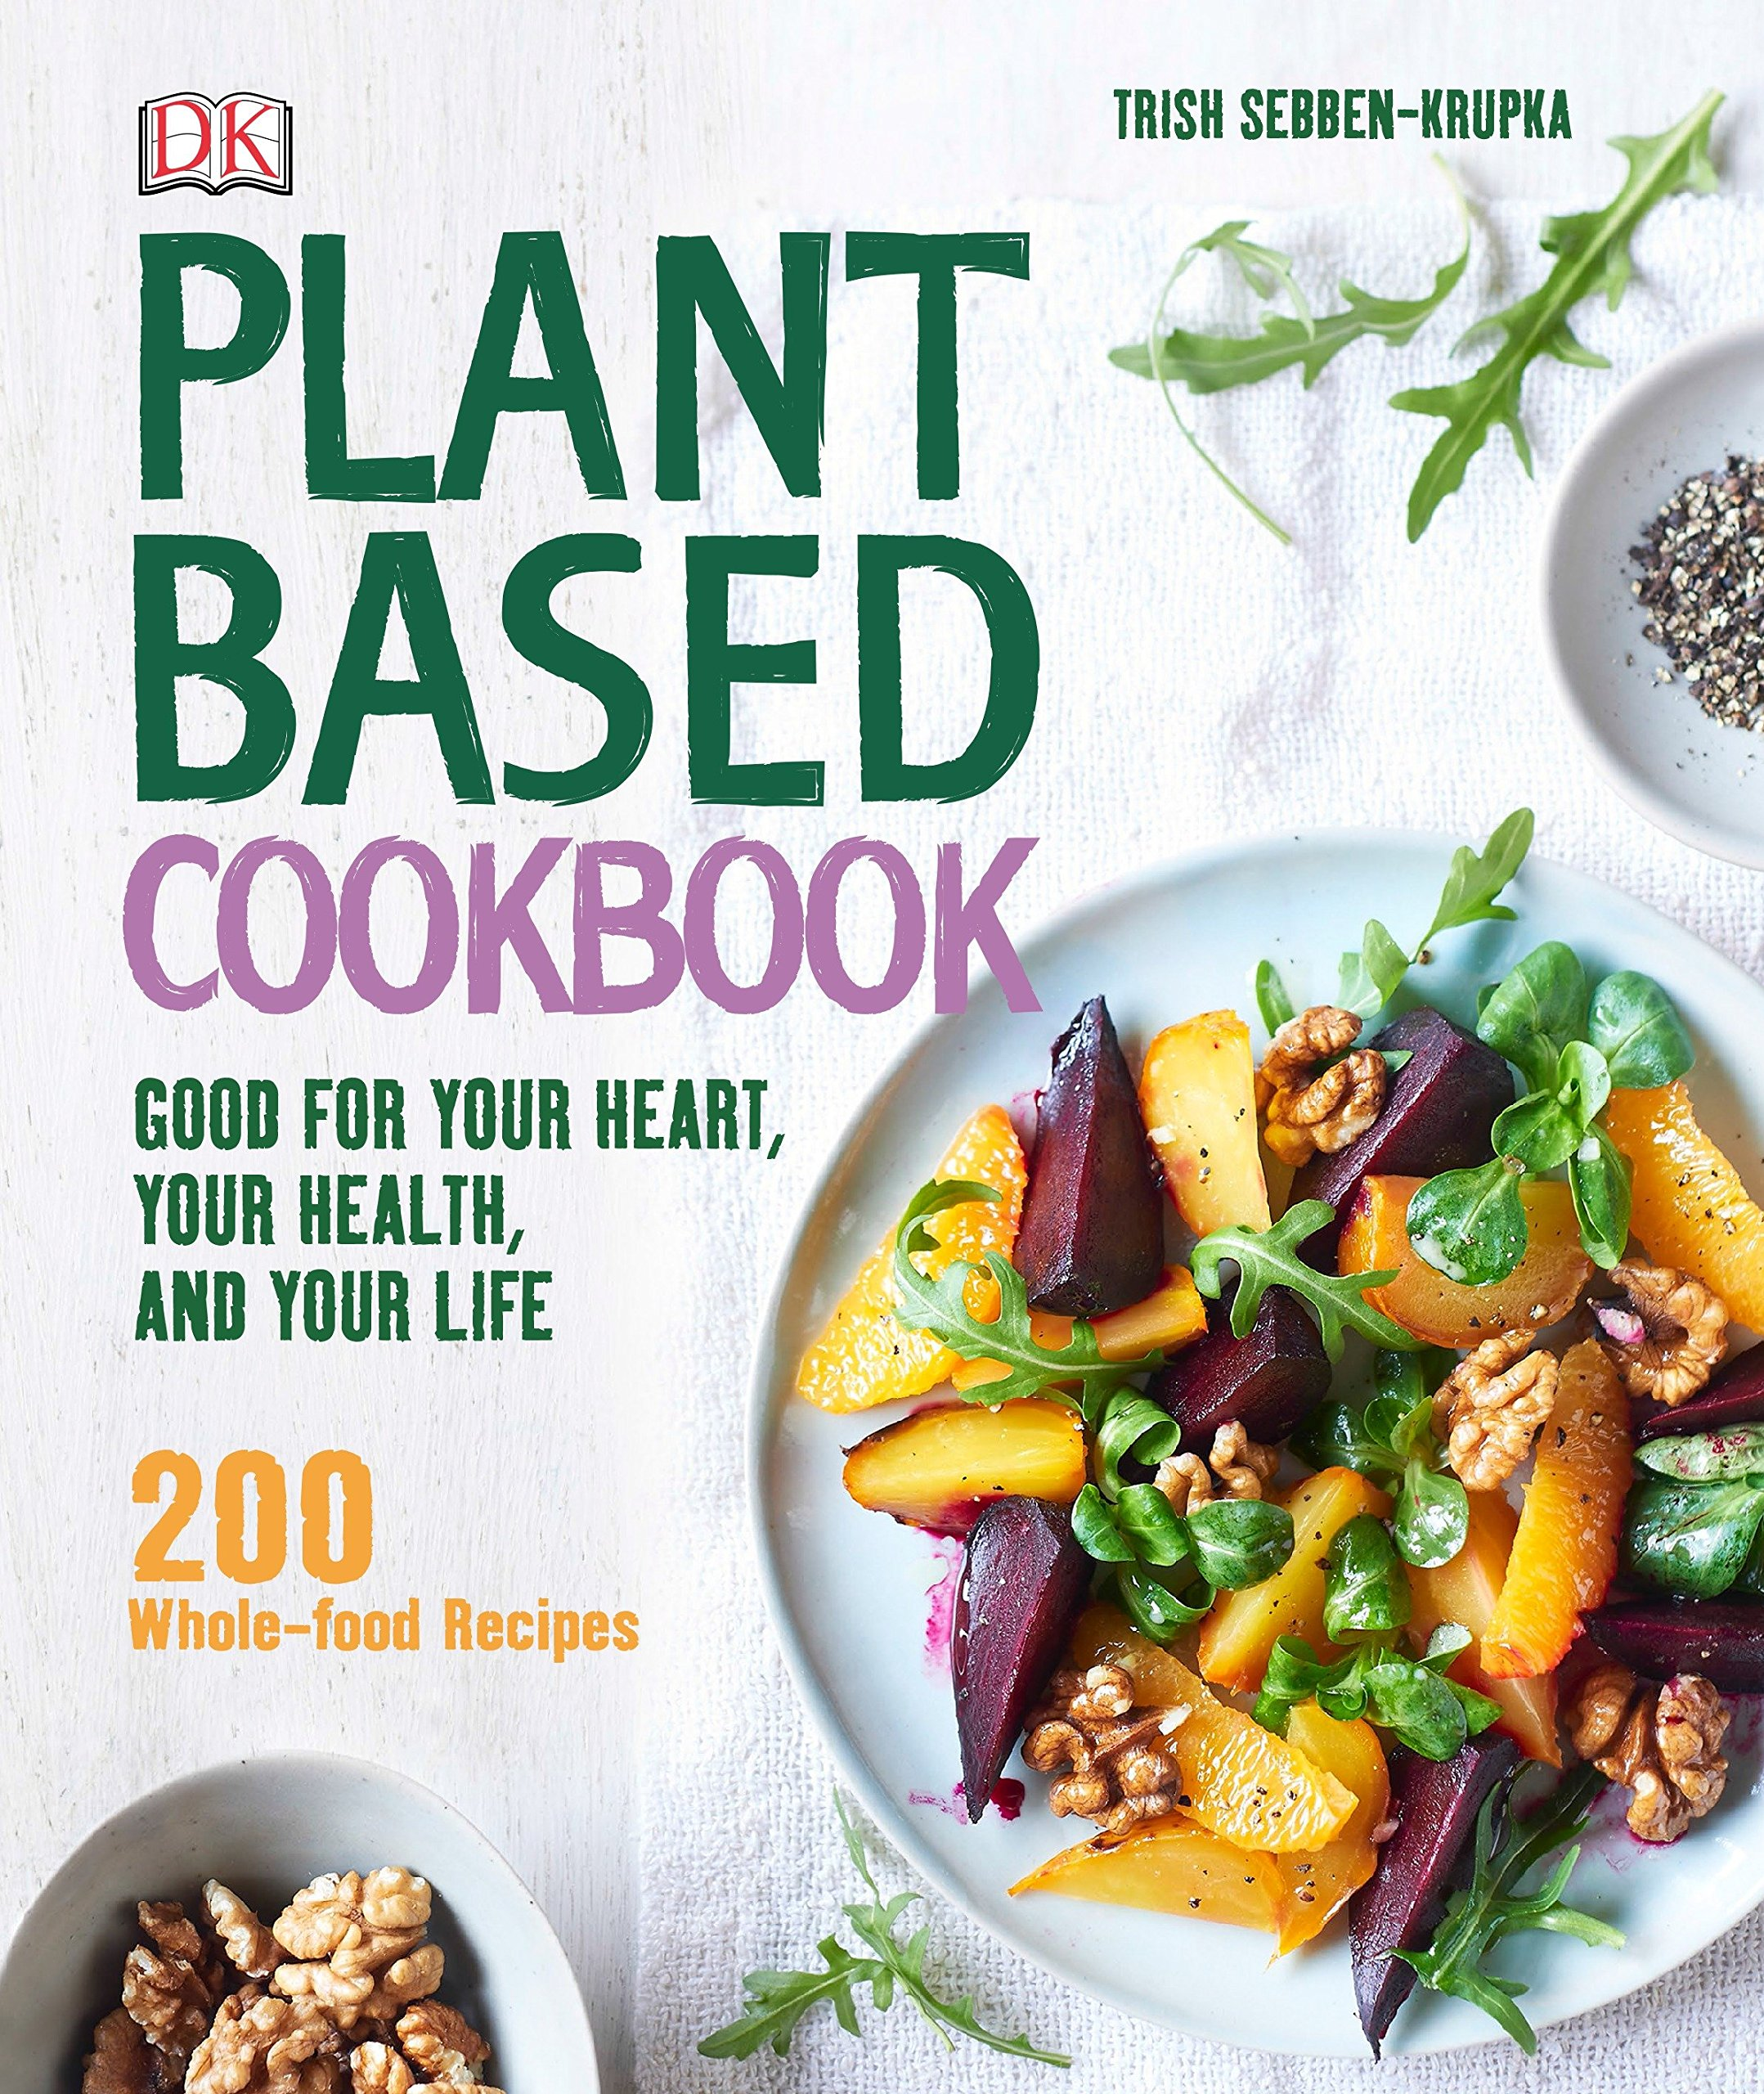 Essential Kitchen Gear For Your Plant Based Kitchen Essential Kitchen Gear For Your Plant Based Kitchen new foto